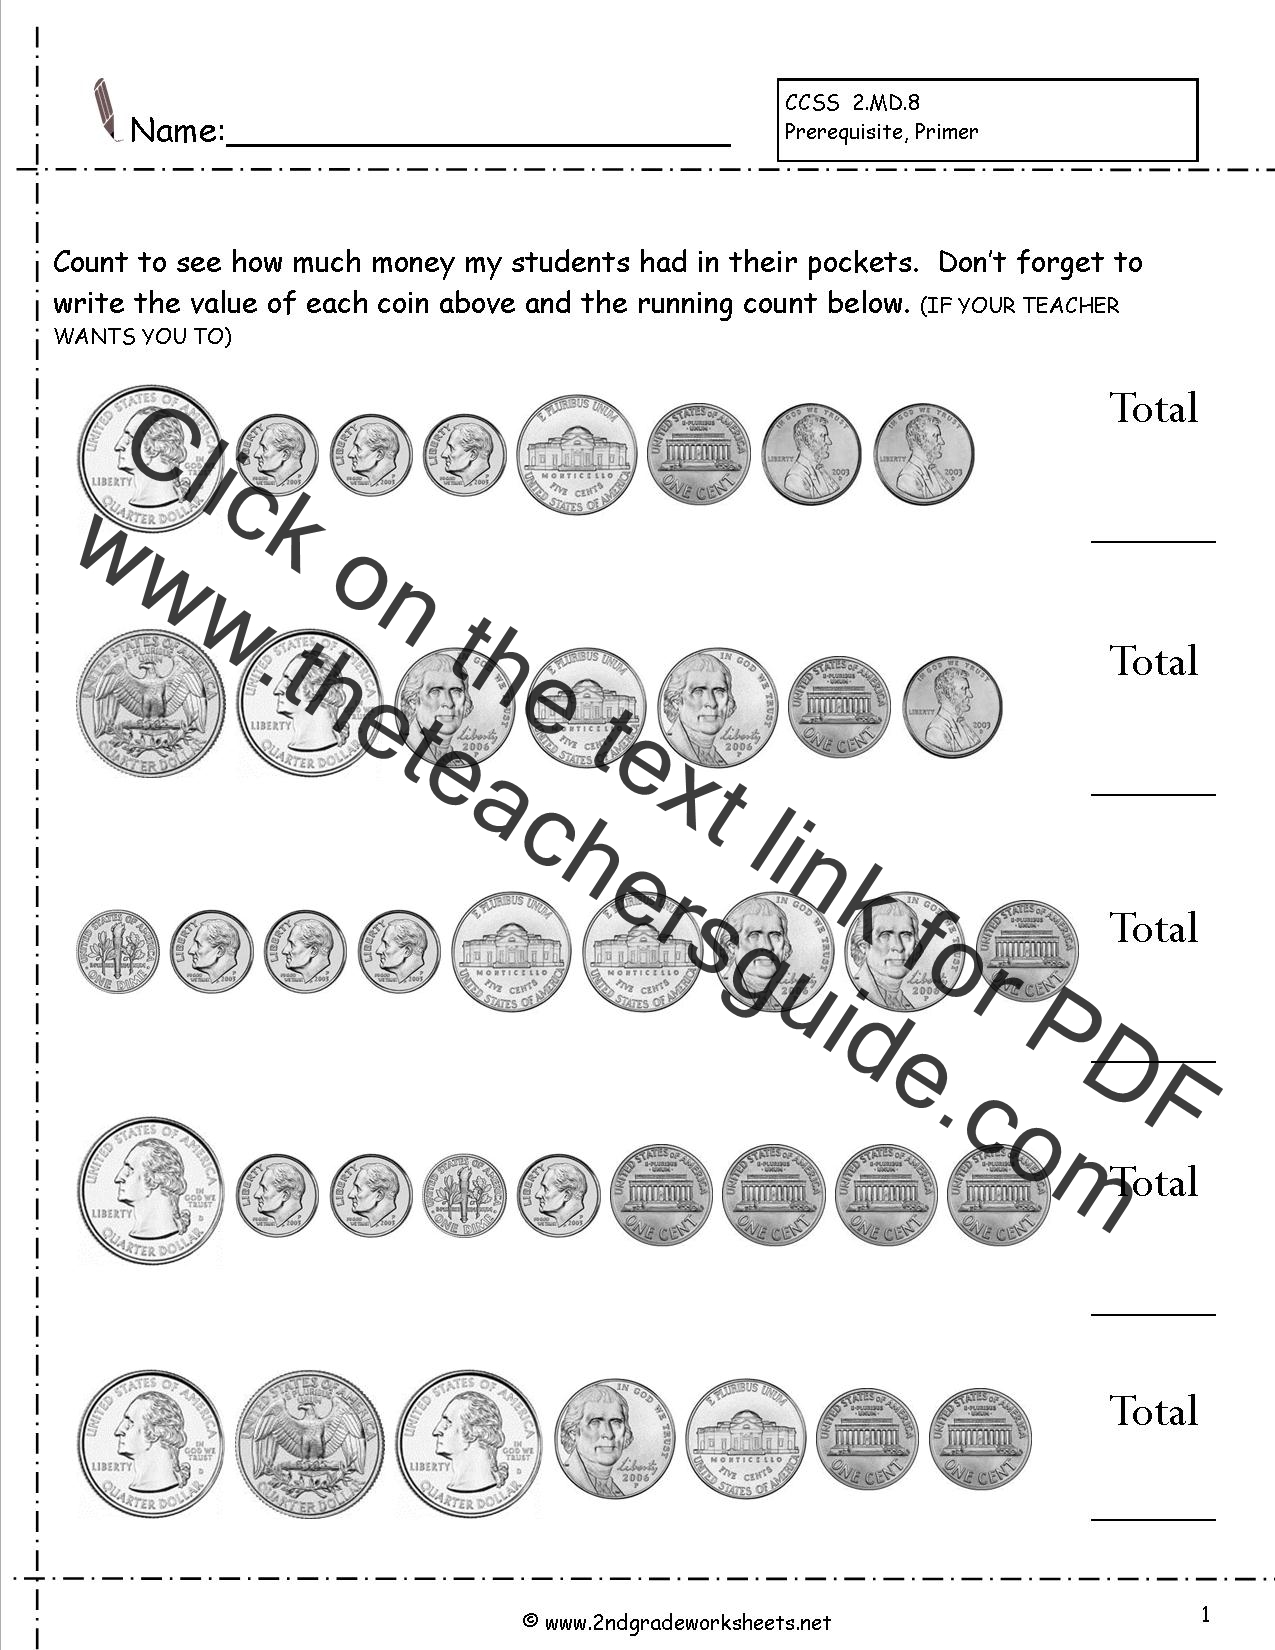 math worksheet : counting coins and money worksheets and printouts : Common Core Math Worksheets 2nd Grade